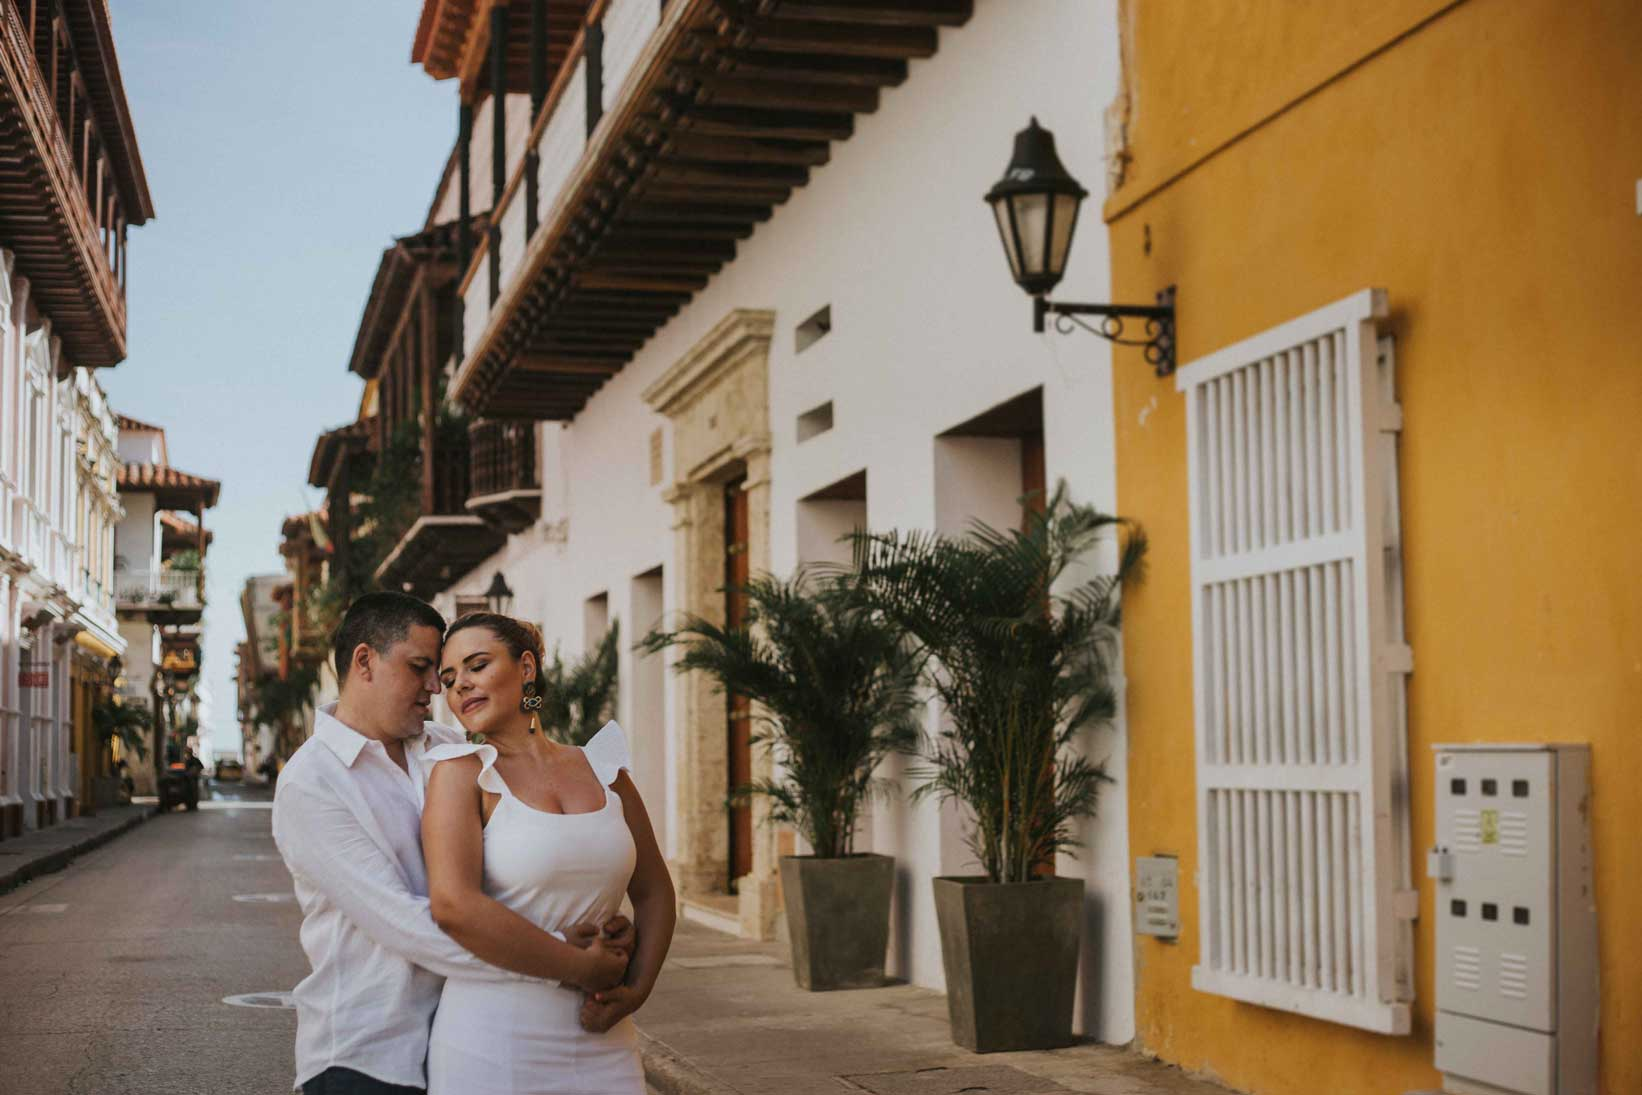 FOTOGRAFOS DE BODA EN CARTAGENA, BODAS EN CARTAGENA, WEDDING PHOTOGRAPHER CARTAGENA COLOMBIA, WEDDING CARTAGENA COLOMBIA, WEDDING PHOTOS CARTAGENA COLOMBIA, KARLOS SANCHEZ WEDDINGS PHOTOGRAPHERS